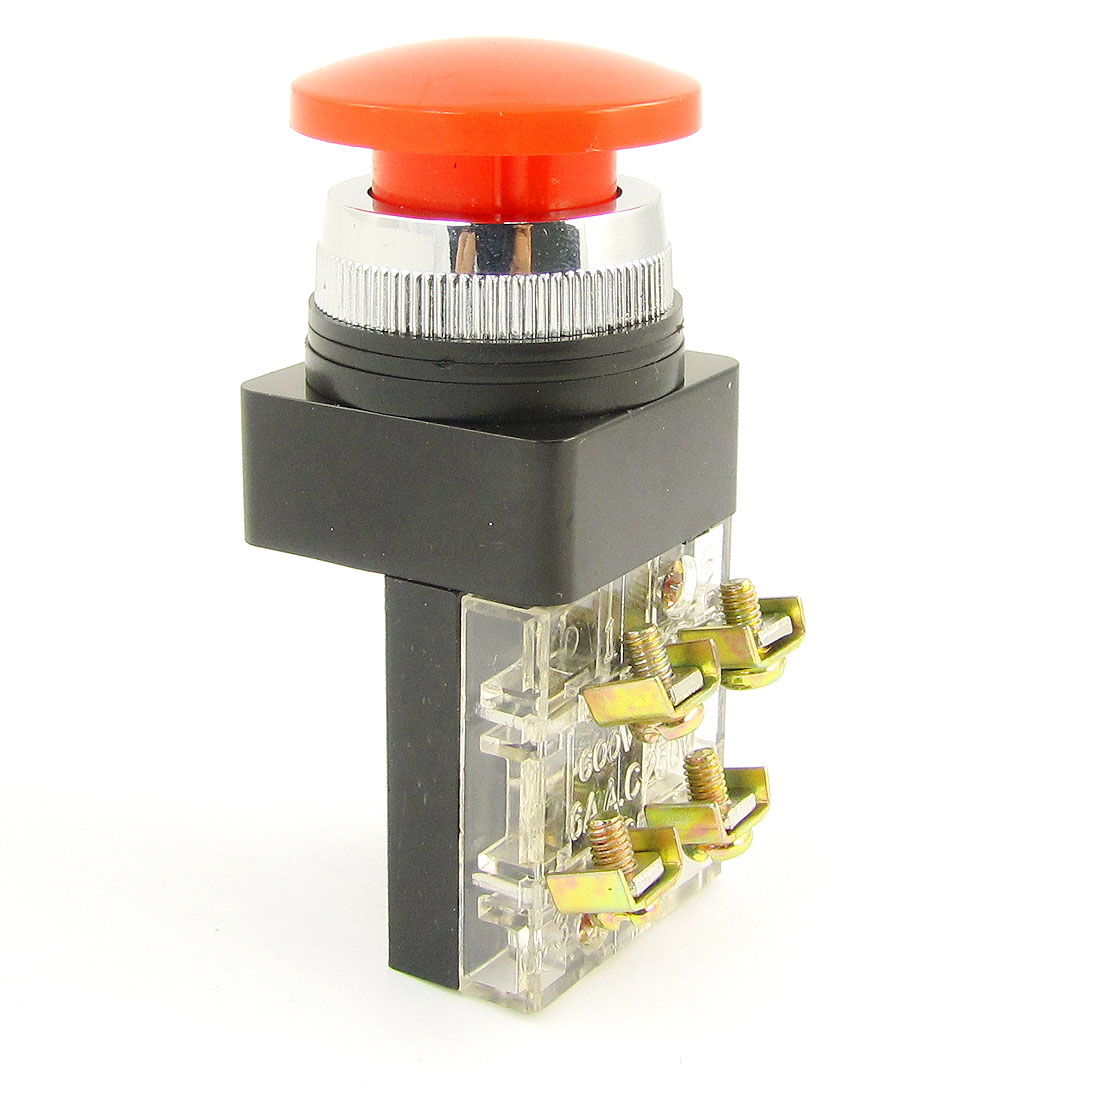 Red Mushroom Head Momentary Actuator SPST Push Button Switch 250V AC 6Amp